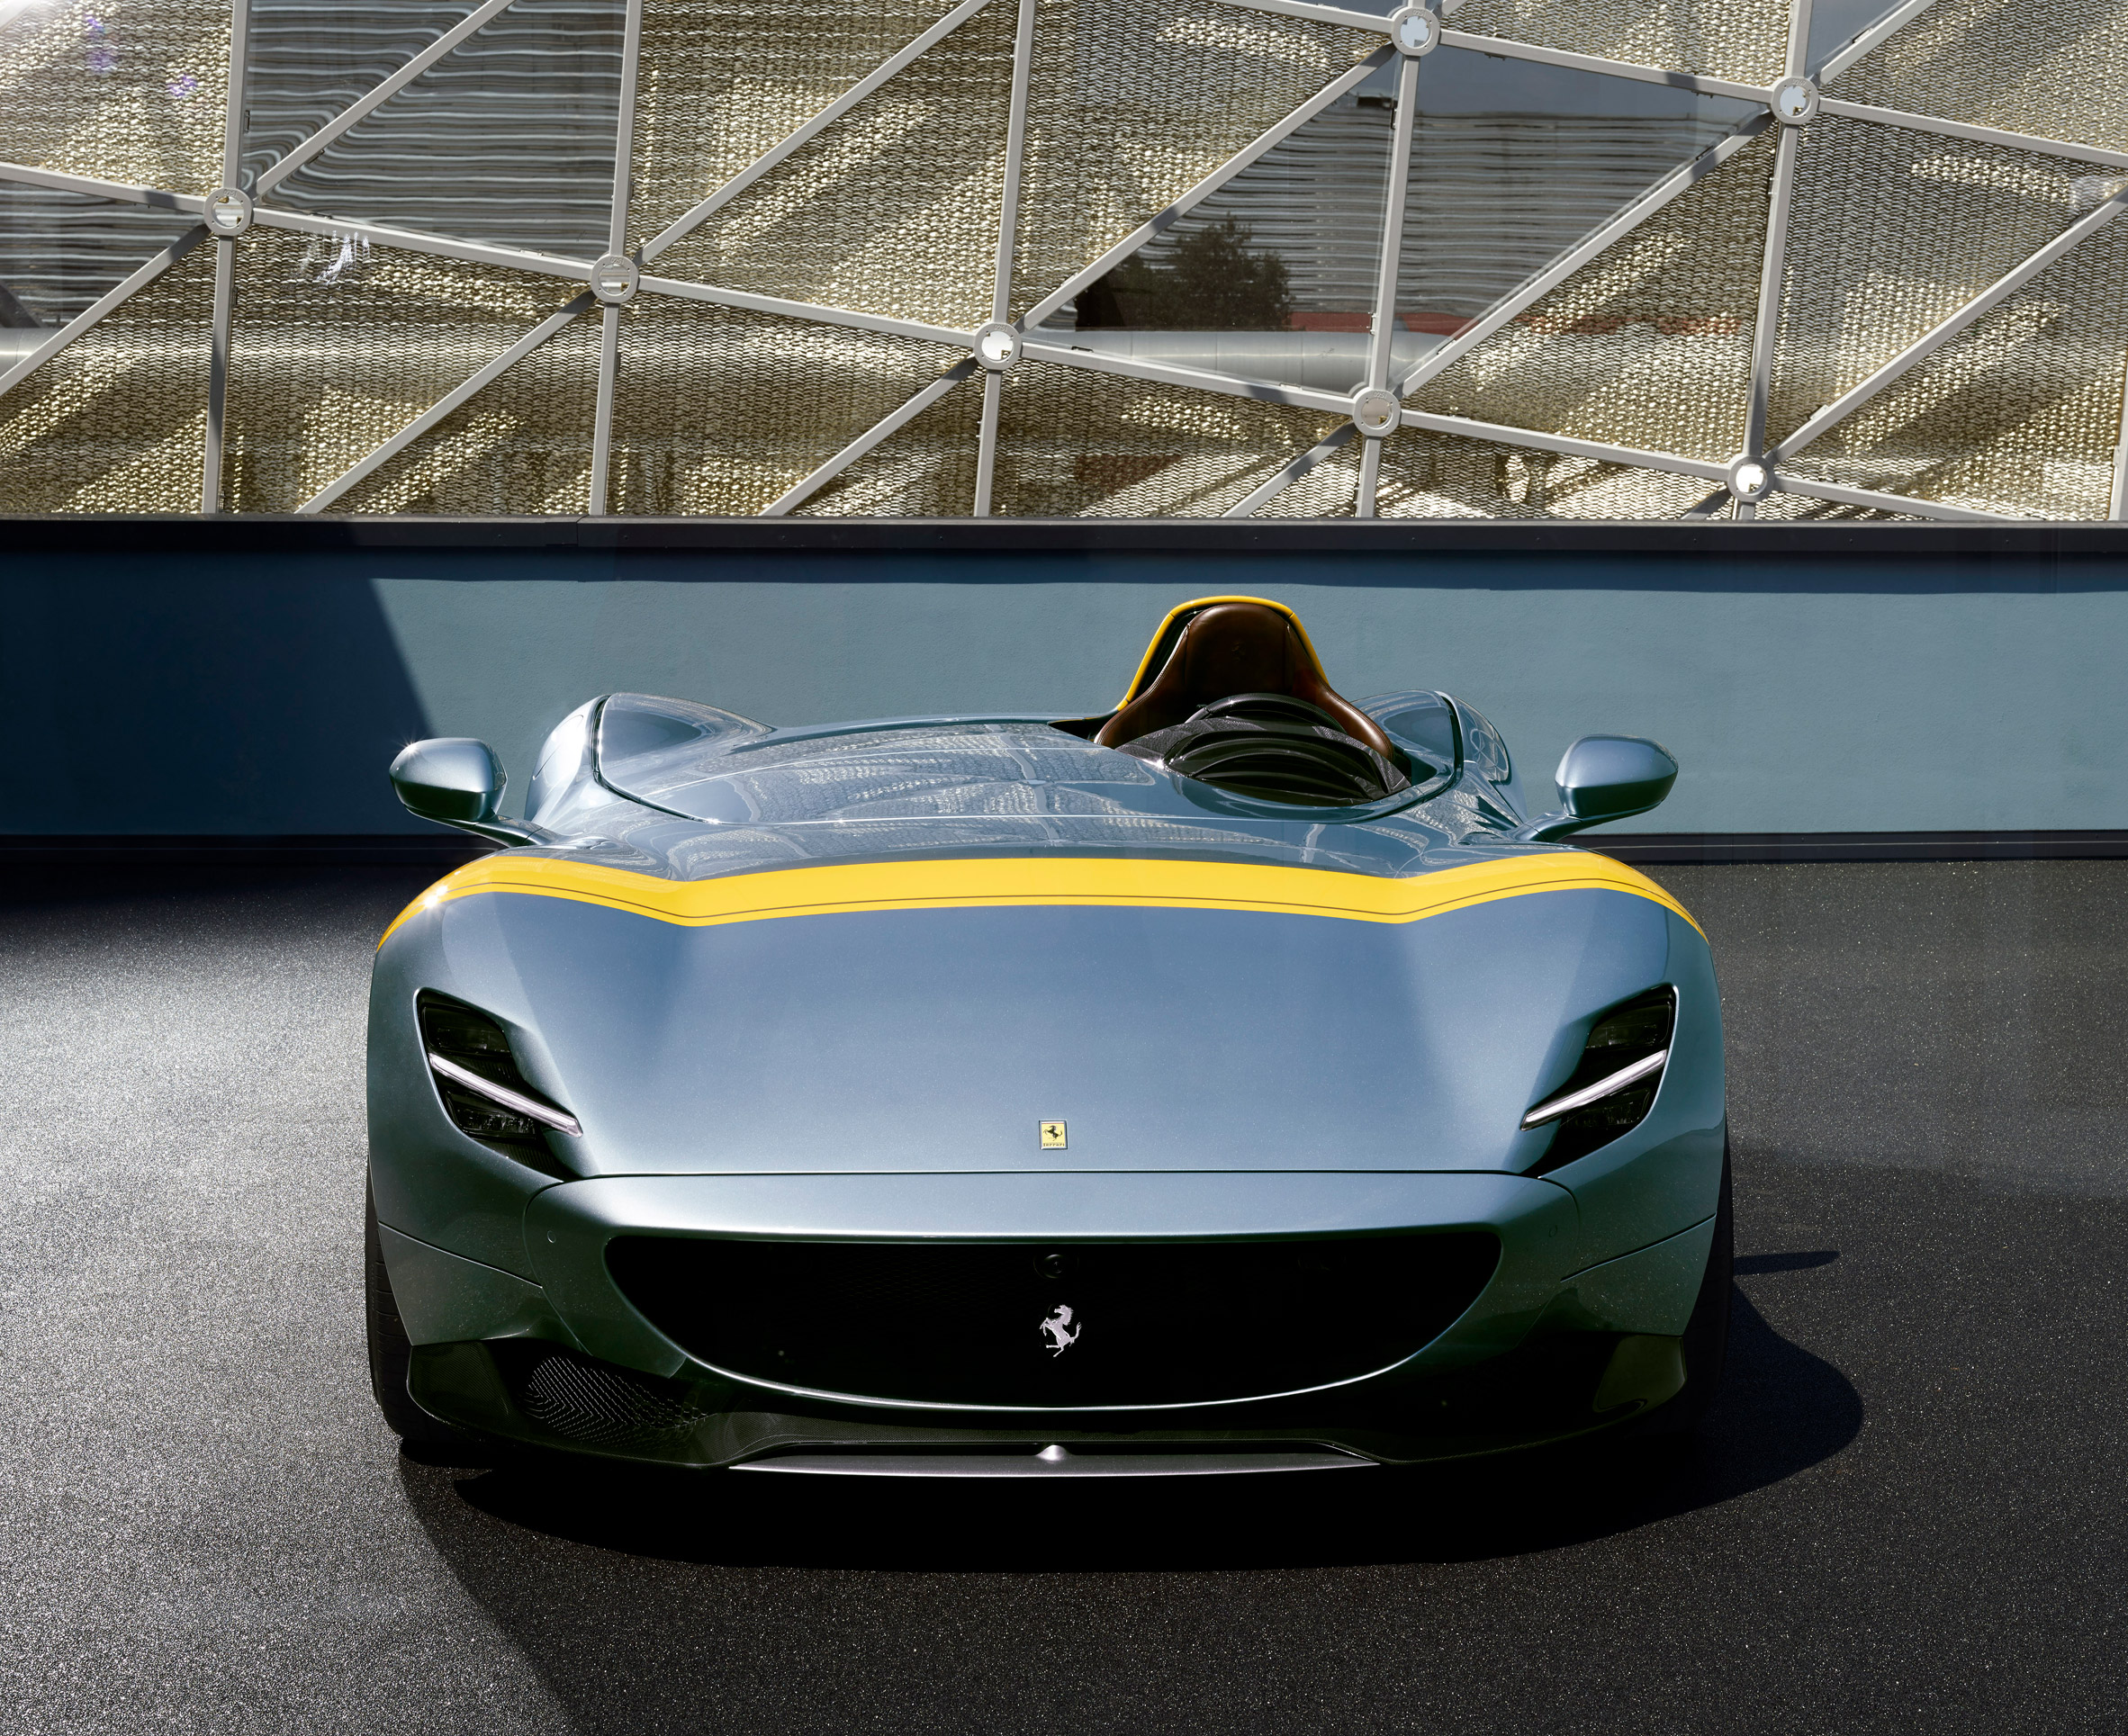 Ferrari Range All The Models On Sale Ferrari Com >> Ferrari S Monza Sp1 And Sp2 Sports Cars Have No Windshield Or Roof